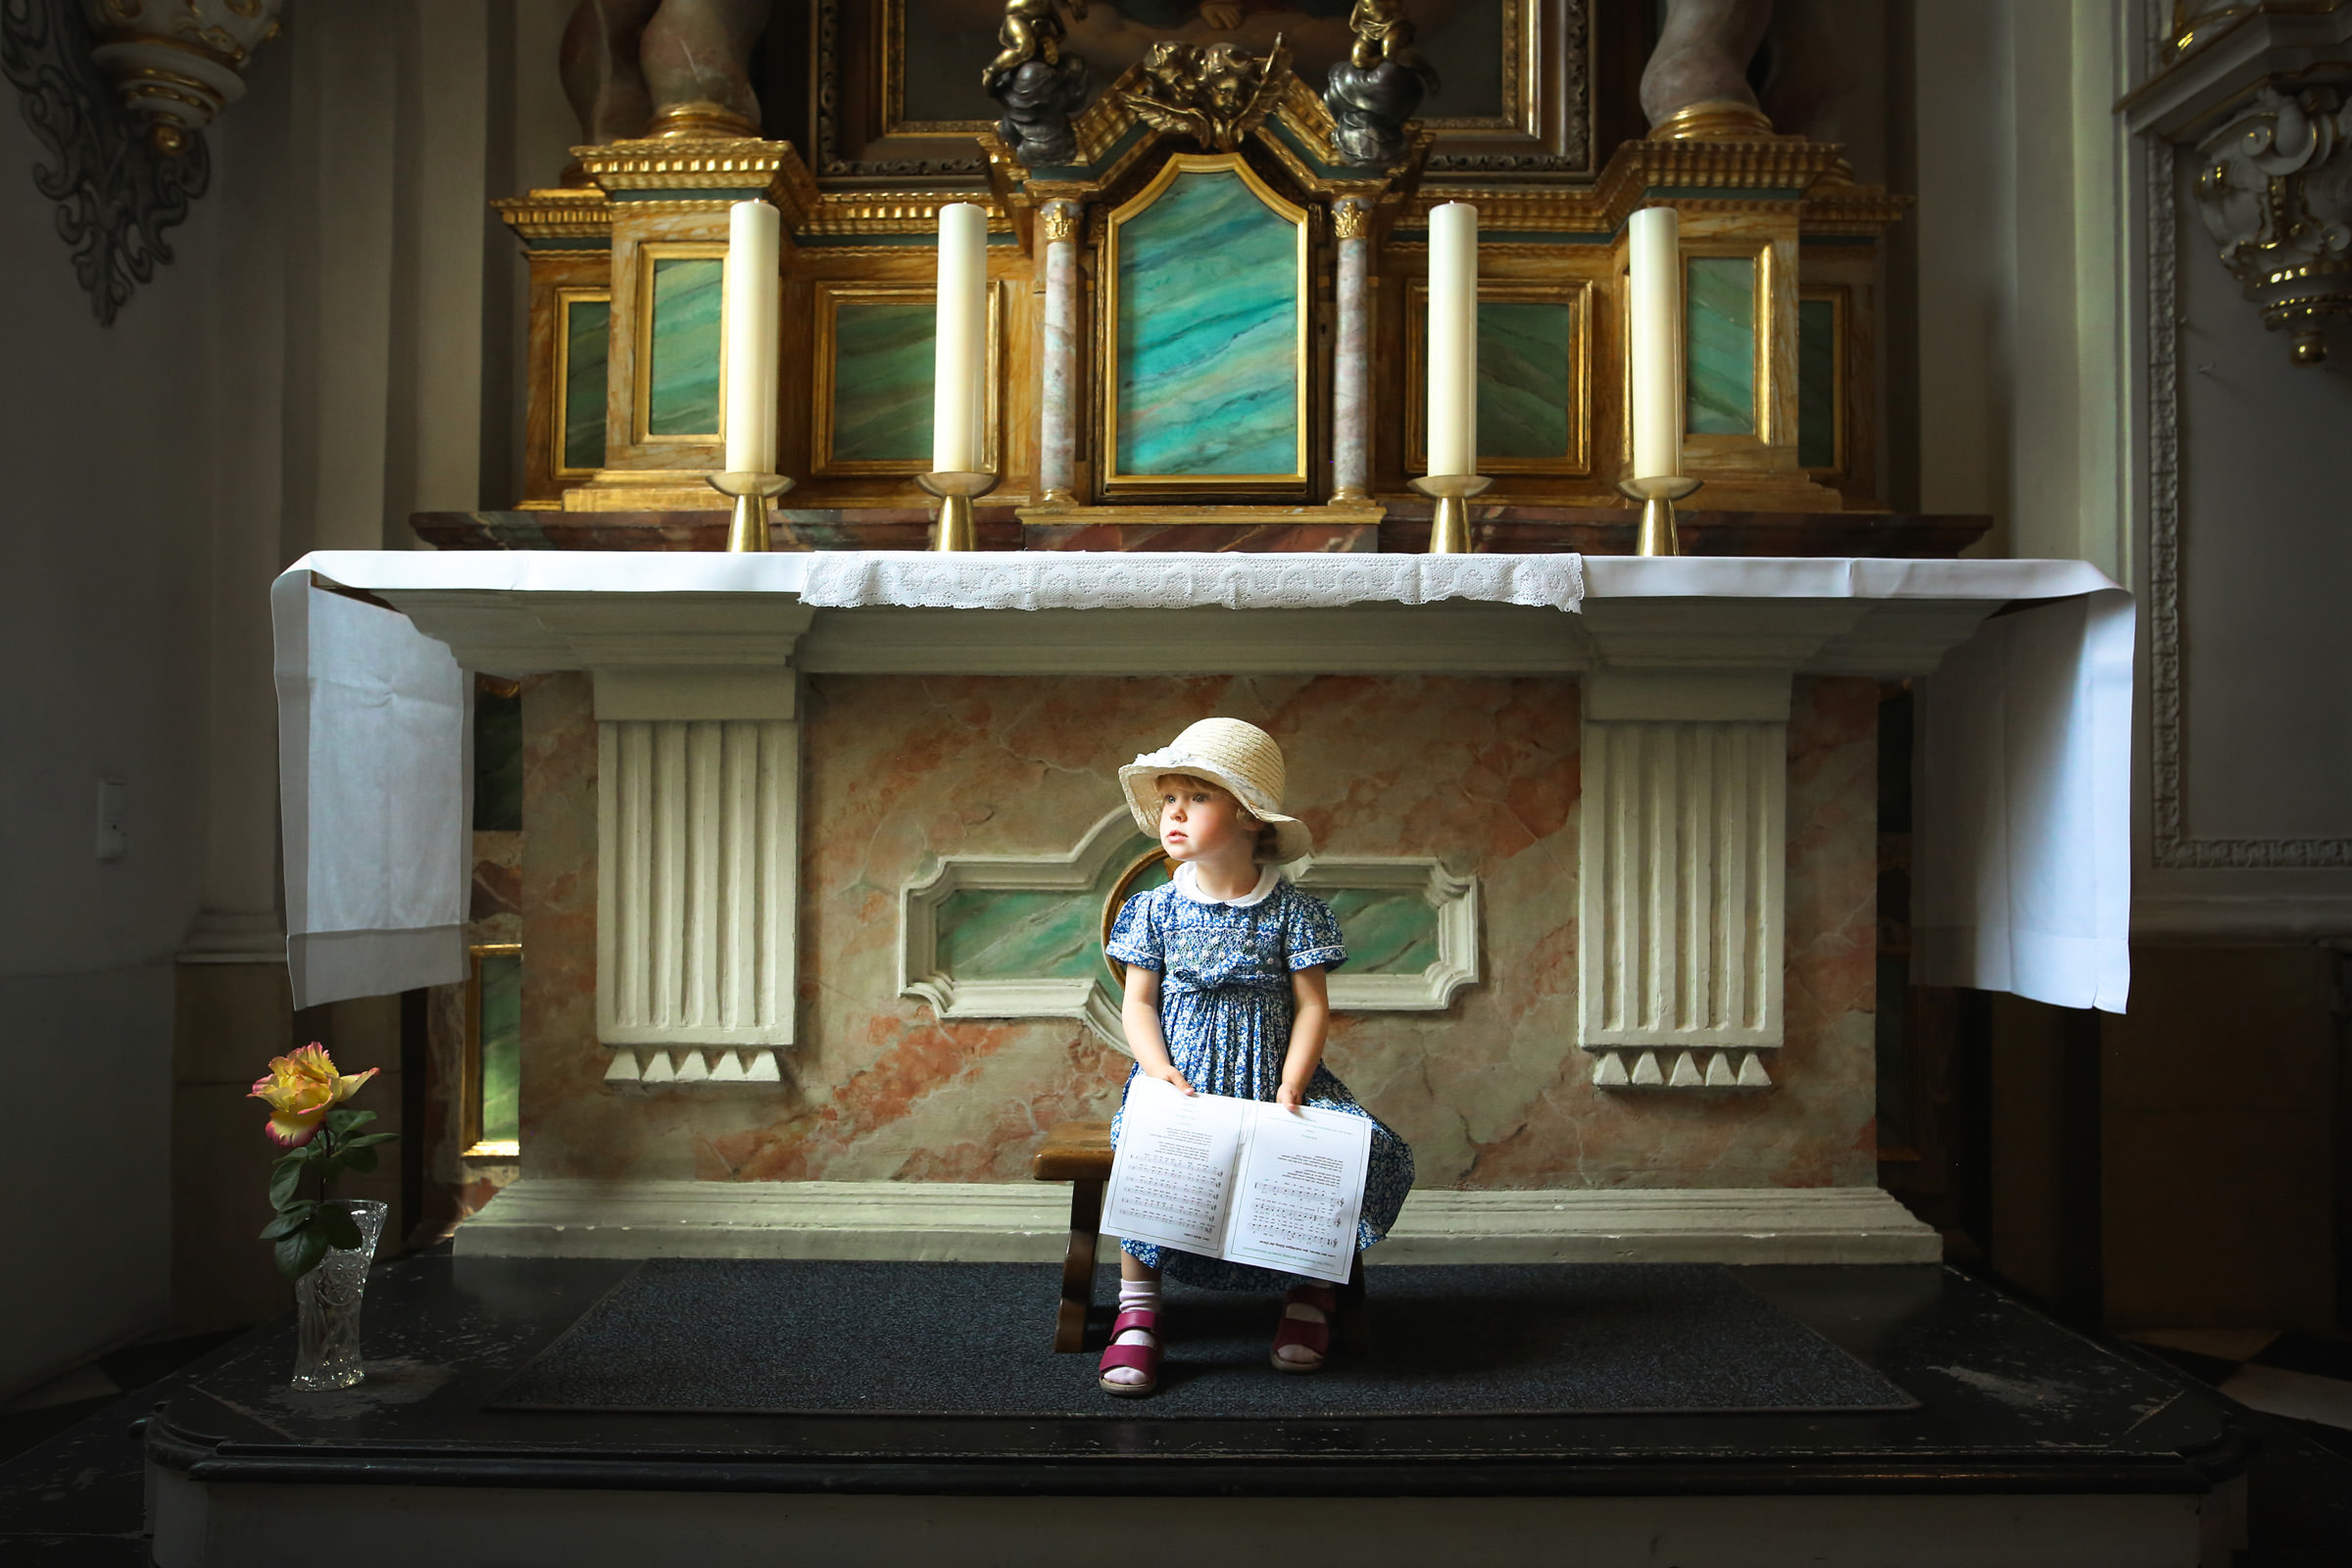 Adorable child with book sitting at altar by Franck Boutonnet